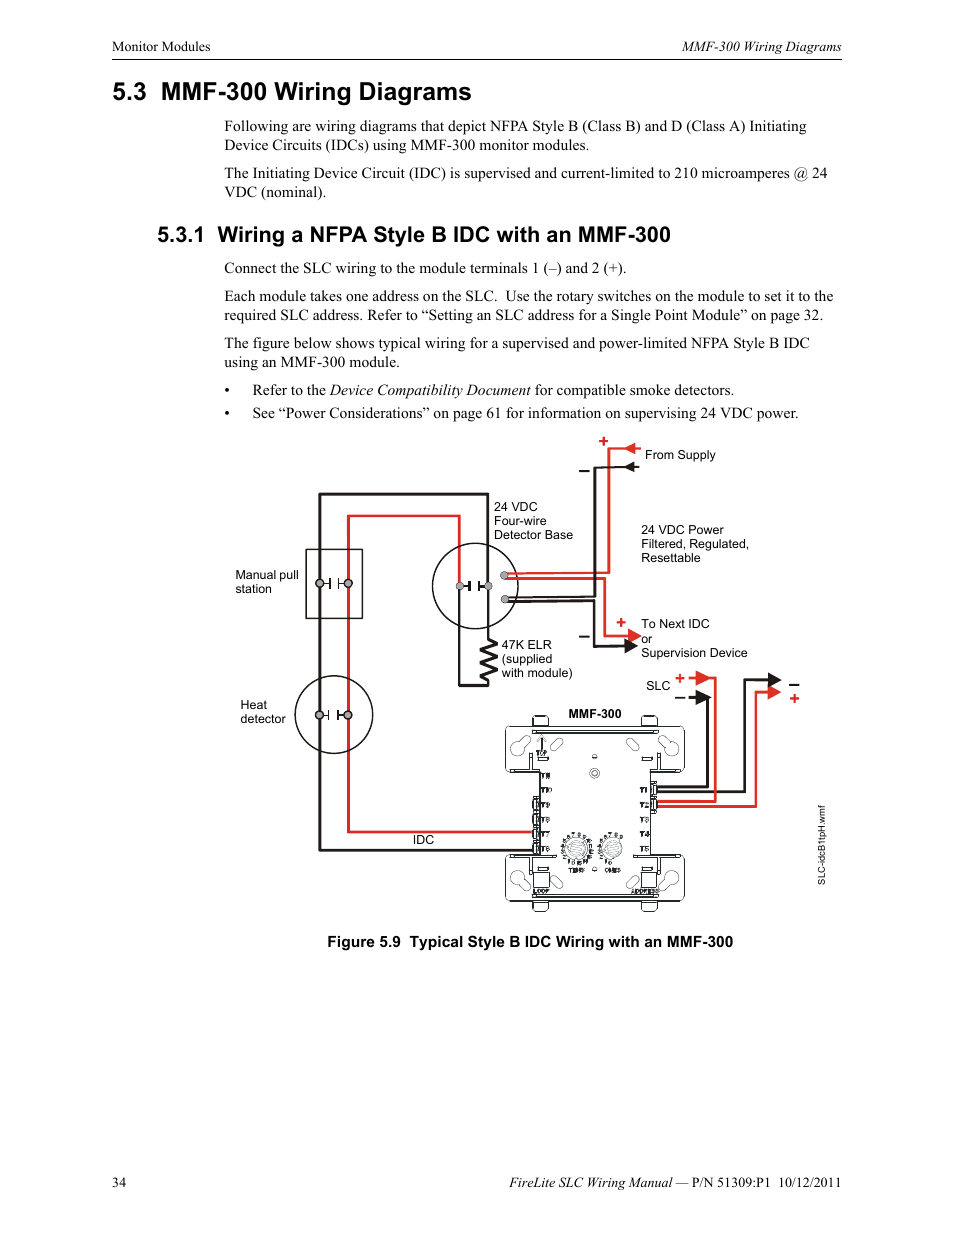 3 Mmf 300 Wiring Diagrams 1 A Nfpa Style B Idc With An Panel Diagram